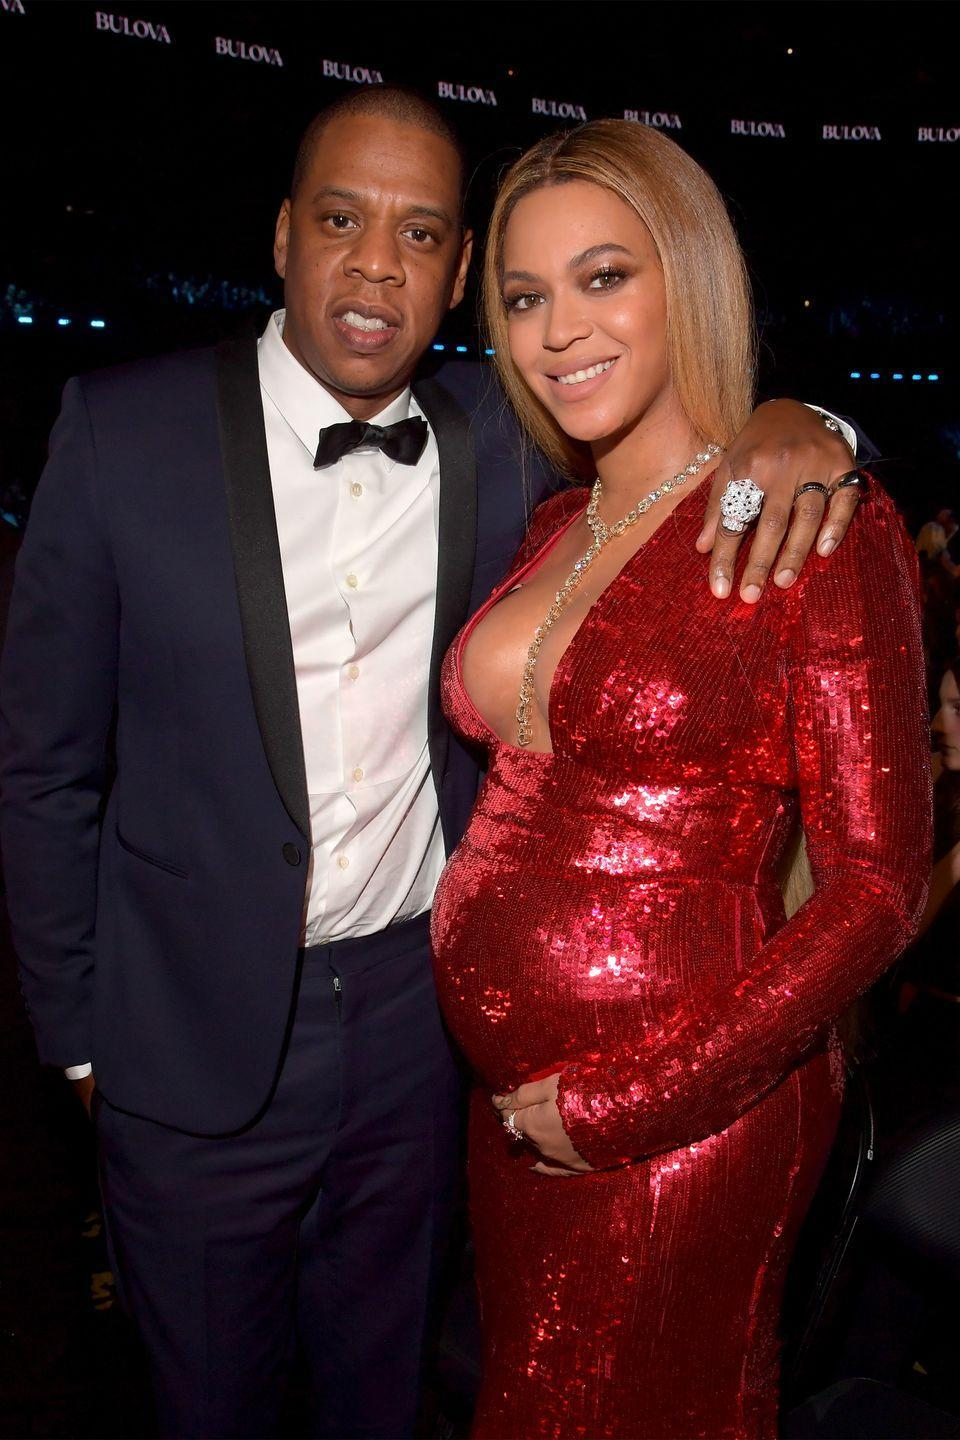 "<p>The rap mogul and his triple-threat wife have 45 Grammy wins between them, and are still ruling the music industry nearly two decades into their careers. The power couple even managed to <a href=""https://www.harpersbazaar.com/culture/art-books-music/a21726662/beyonce-jay-z-everything-is-love-album-review/"" rel=""nofollow noopener"" target=""_blank"" data-ylk=""slk:shut down the Louvre"" class=""link rapid-noclick-resp"">shut down the Louvre</a> for their ""Apeshit"" music video.</p><p>Bey and Jay were married in a <a href=""https://people.com/music/beyonce-jayz-wedding-anniversary-photo-tina-knowles/"" rel=""nofollow noopener"" target=""_blank"" data-ylk=""slk:secret wedding"" class=""link rapid-noclick-resp"">secret wedding</a> in 2008, and gave birth to daughter Blue Ivy in 2012. In 2017, Beyoncé <a href=""https://www.harpersbazaar.com/culture/news/a20368/beyonce-pregnancy-photo-symbolism-decoded/"" rel=""nofollow noopener"" target=""_blank"" data-ylk=""slk:broke the internet"" class=""link rapid-noclick-resp"">broke the internet</a> when she announced she was pregnant with twins, Rumi and Sir, who <a href=""https://www.harpersbazaar.com/celebrity/latest/a10042051/beyonce-twins-first-photo/"" rel=""nofollow noopener"" target=""_blank"" data-ylk=""slk:were born"" class=""link rapid-noclick-resp"">were born</a> in June of that year. <br></p>"